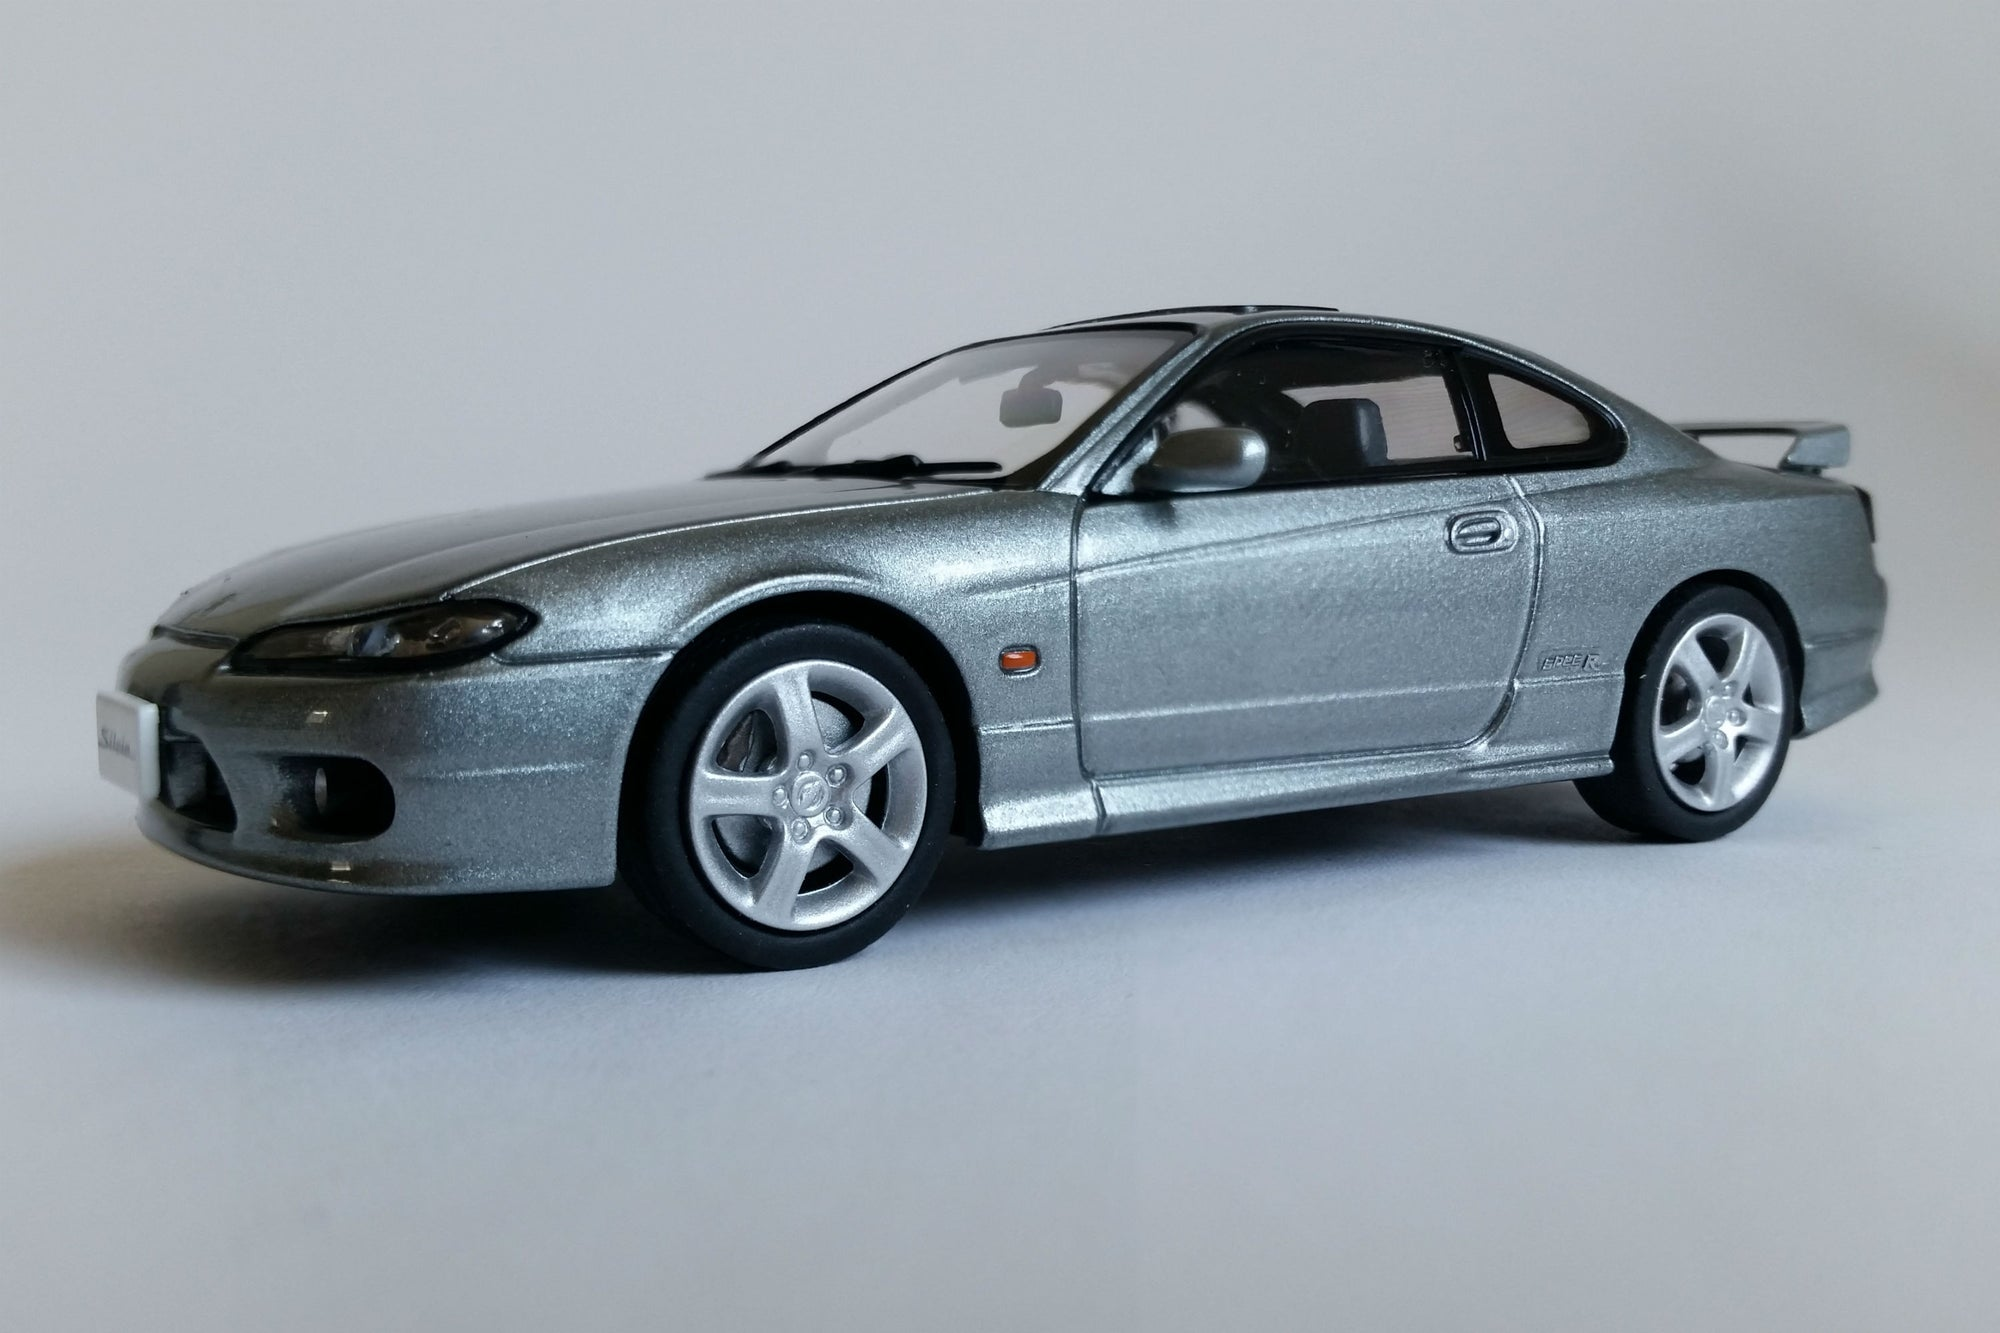 2000 Nissan Silvia S15 Spec R Pearl White 6 Speed Manual Coupe ...